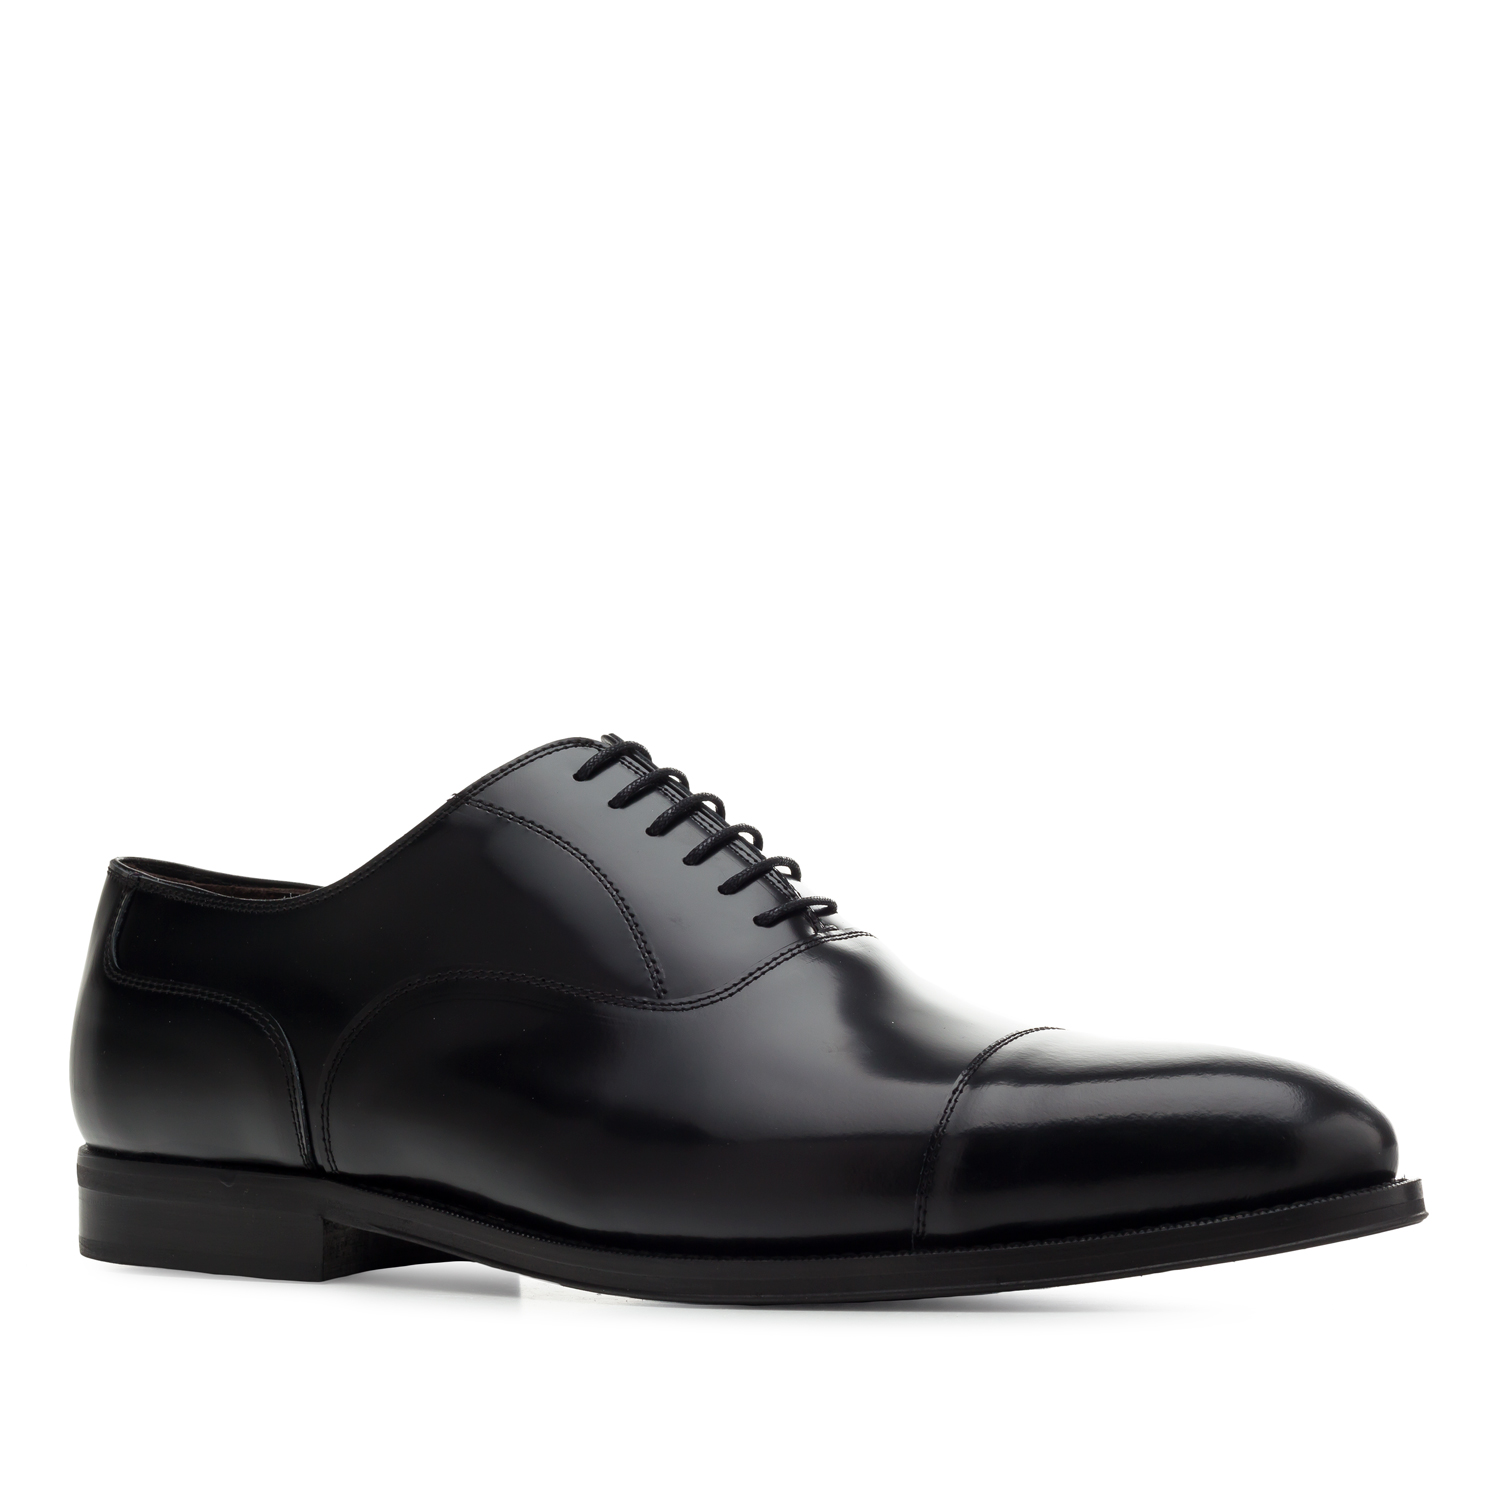 Oxford Shoes in Black Antik Leather